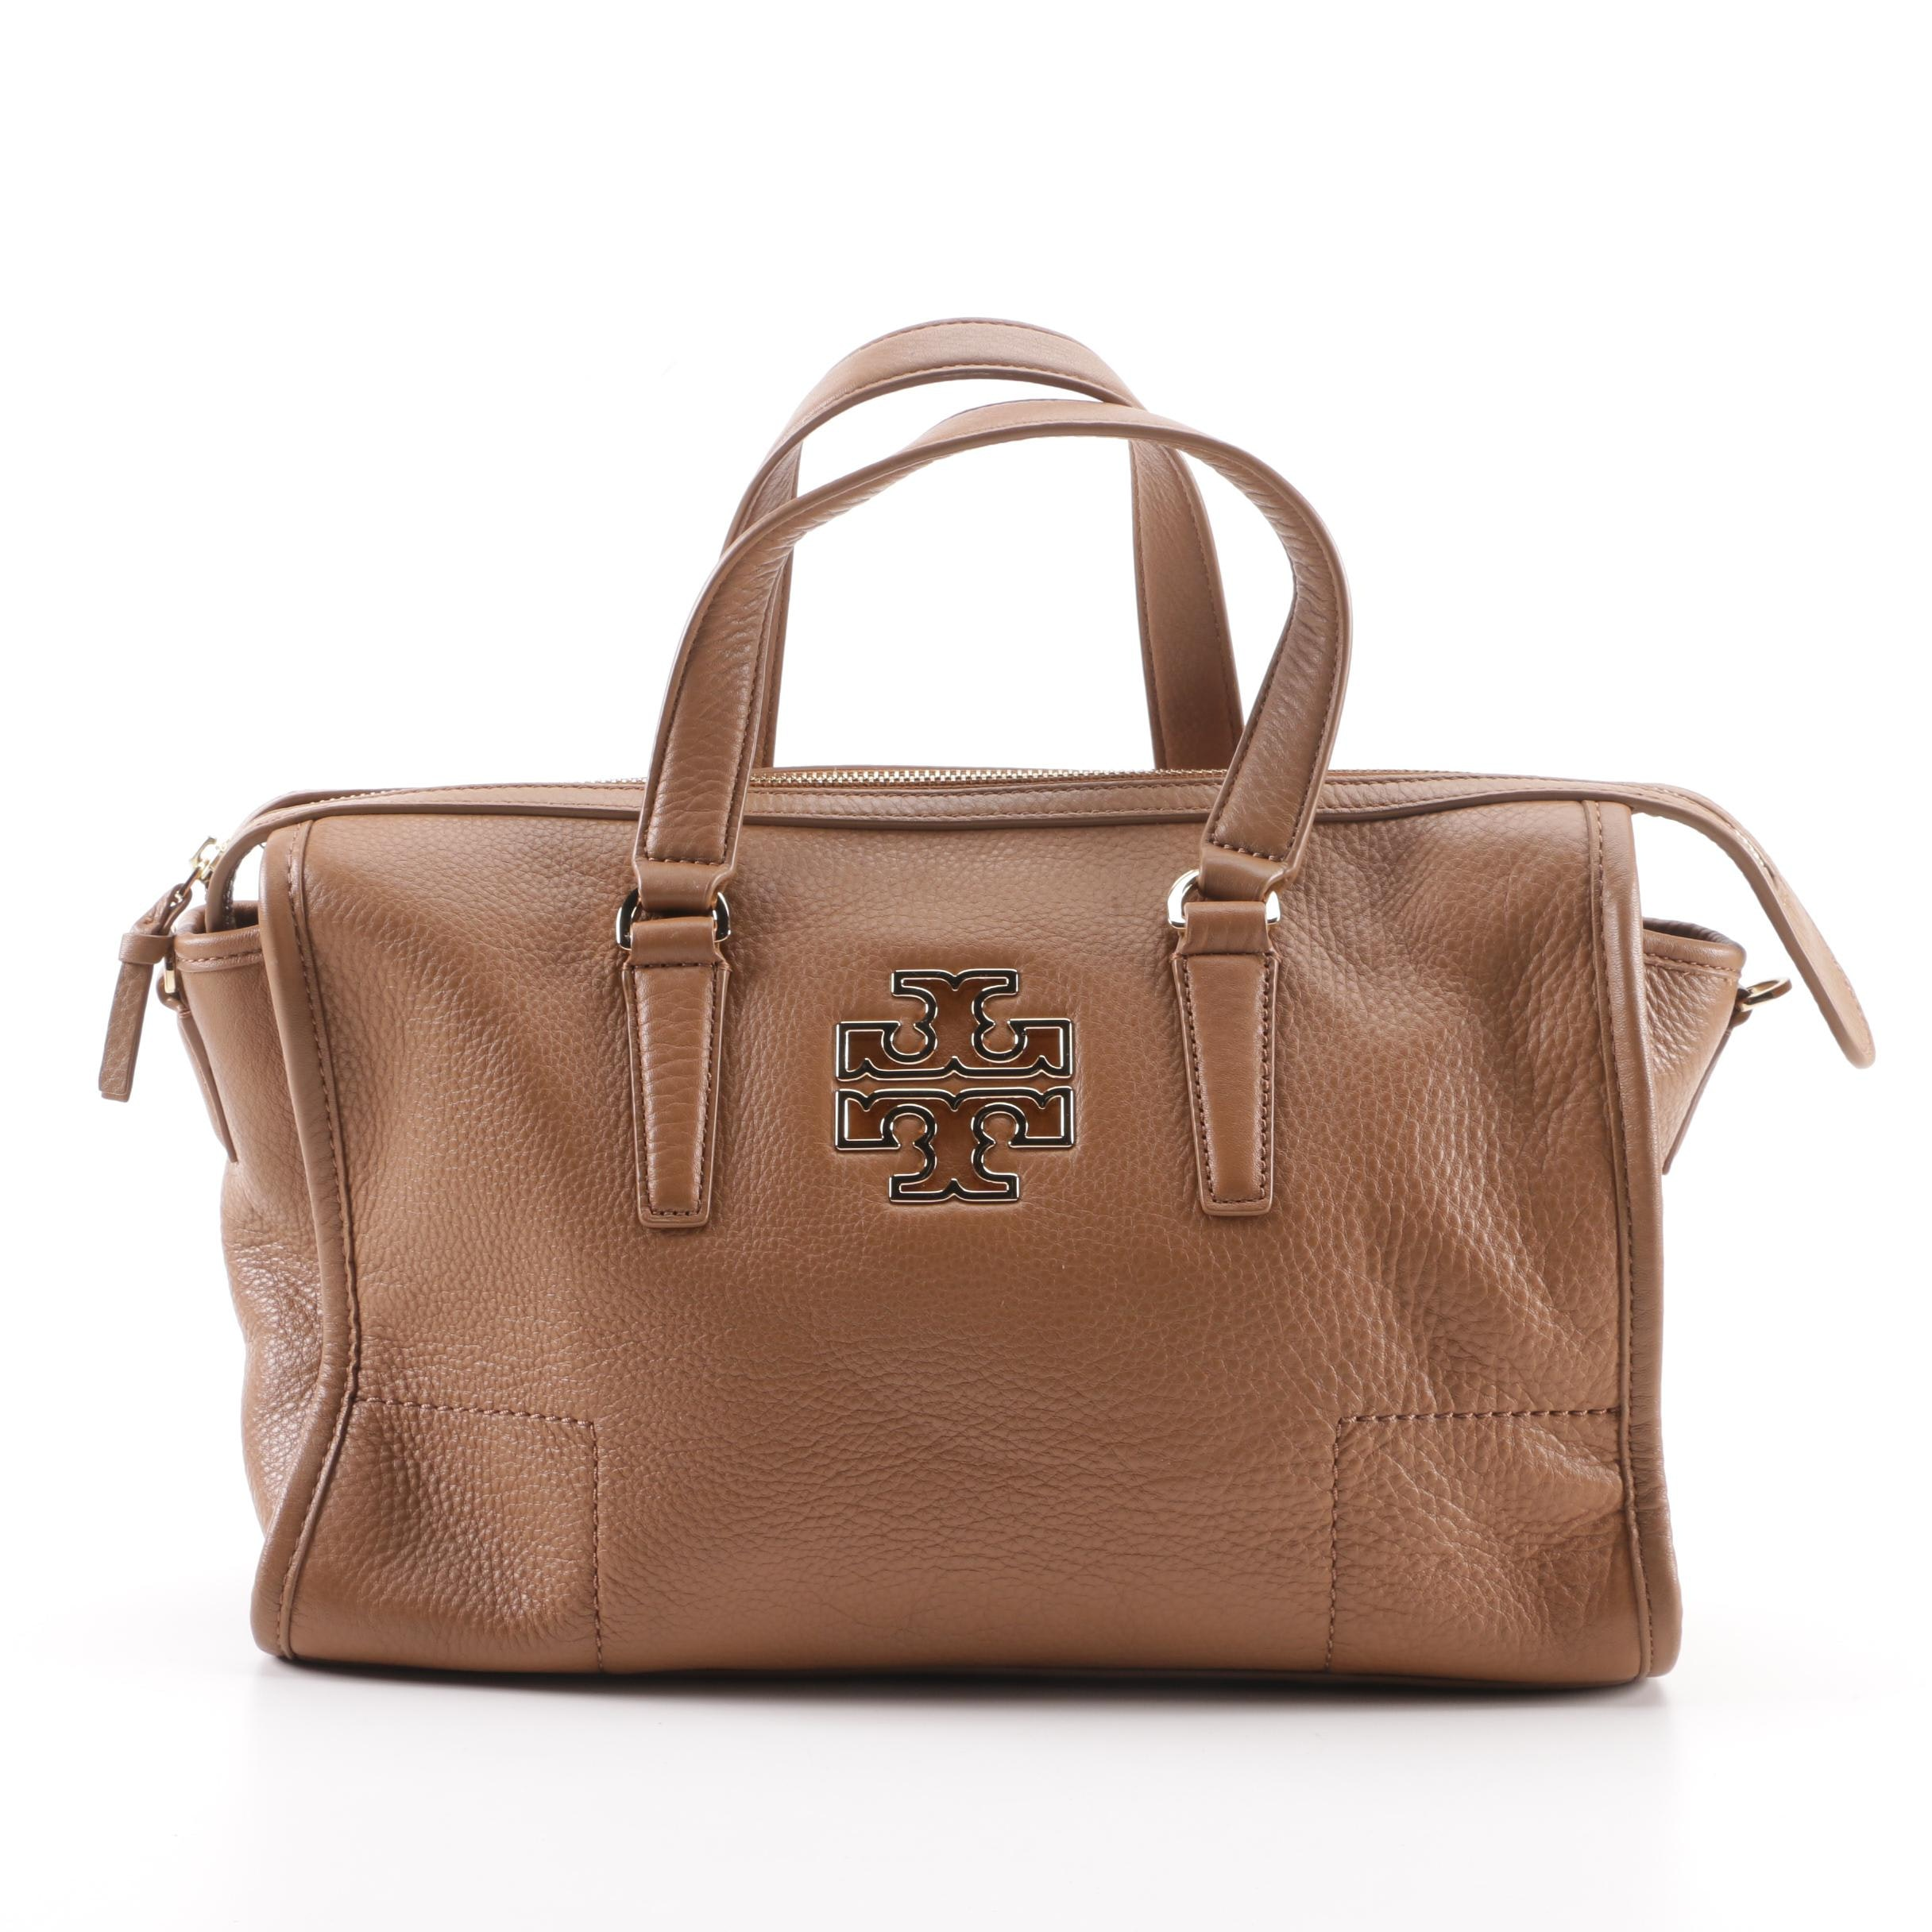 Tory Burch Light Brown Leather Satchel